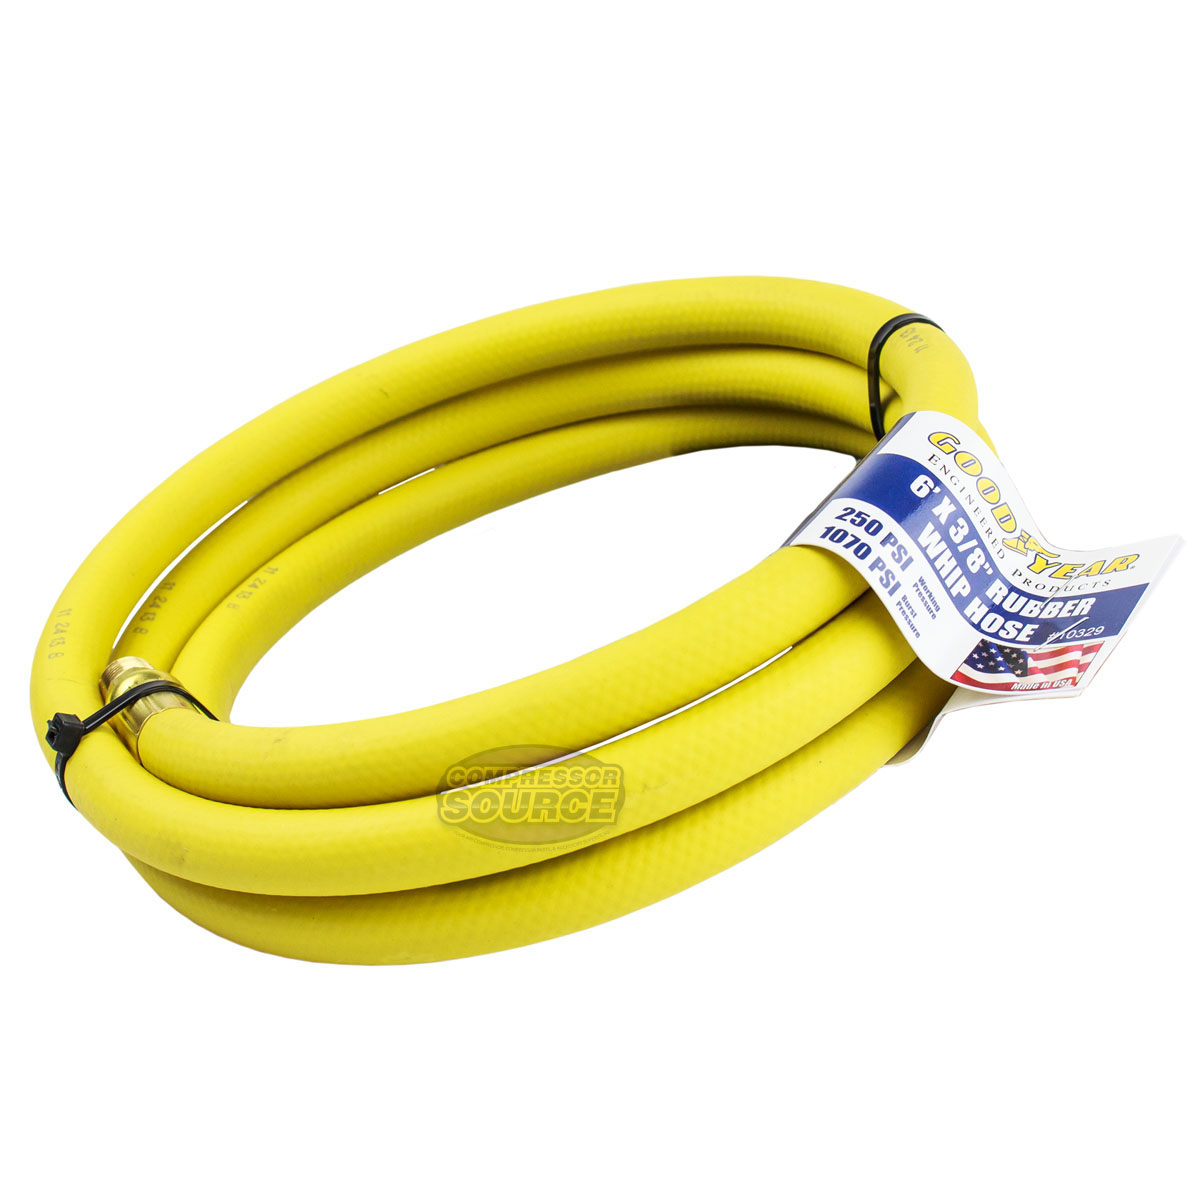 Goodyear USA 6 Foot 3//8 Inch 250 PSI Oil Resistant Rubber Air Hose Pigtail Whip